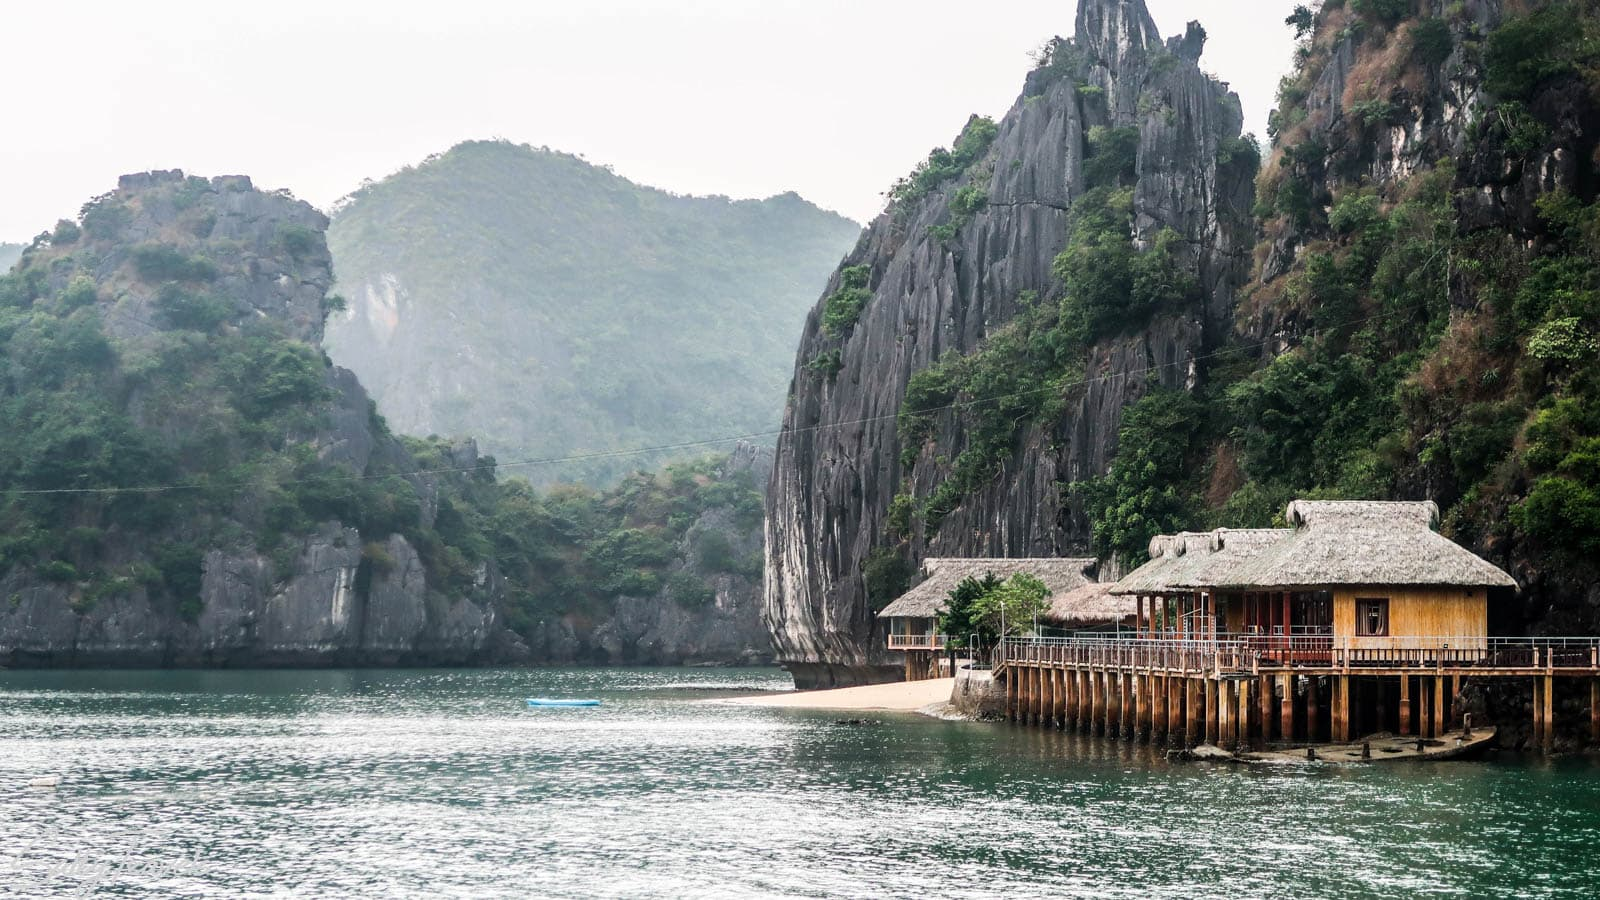 Ha long bay boat trip for backpackers